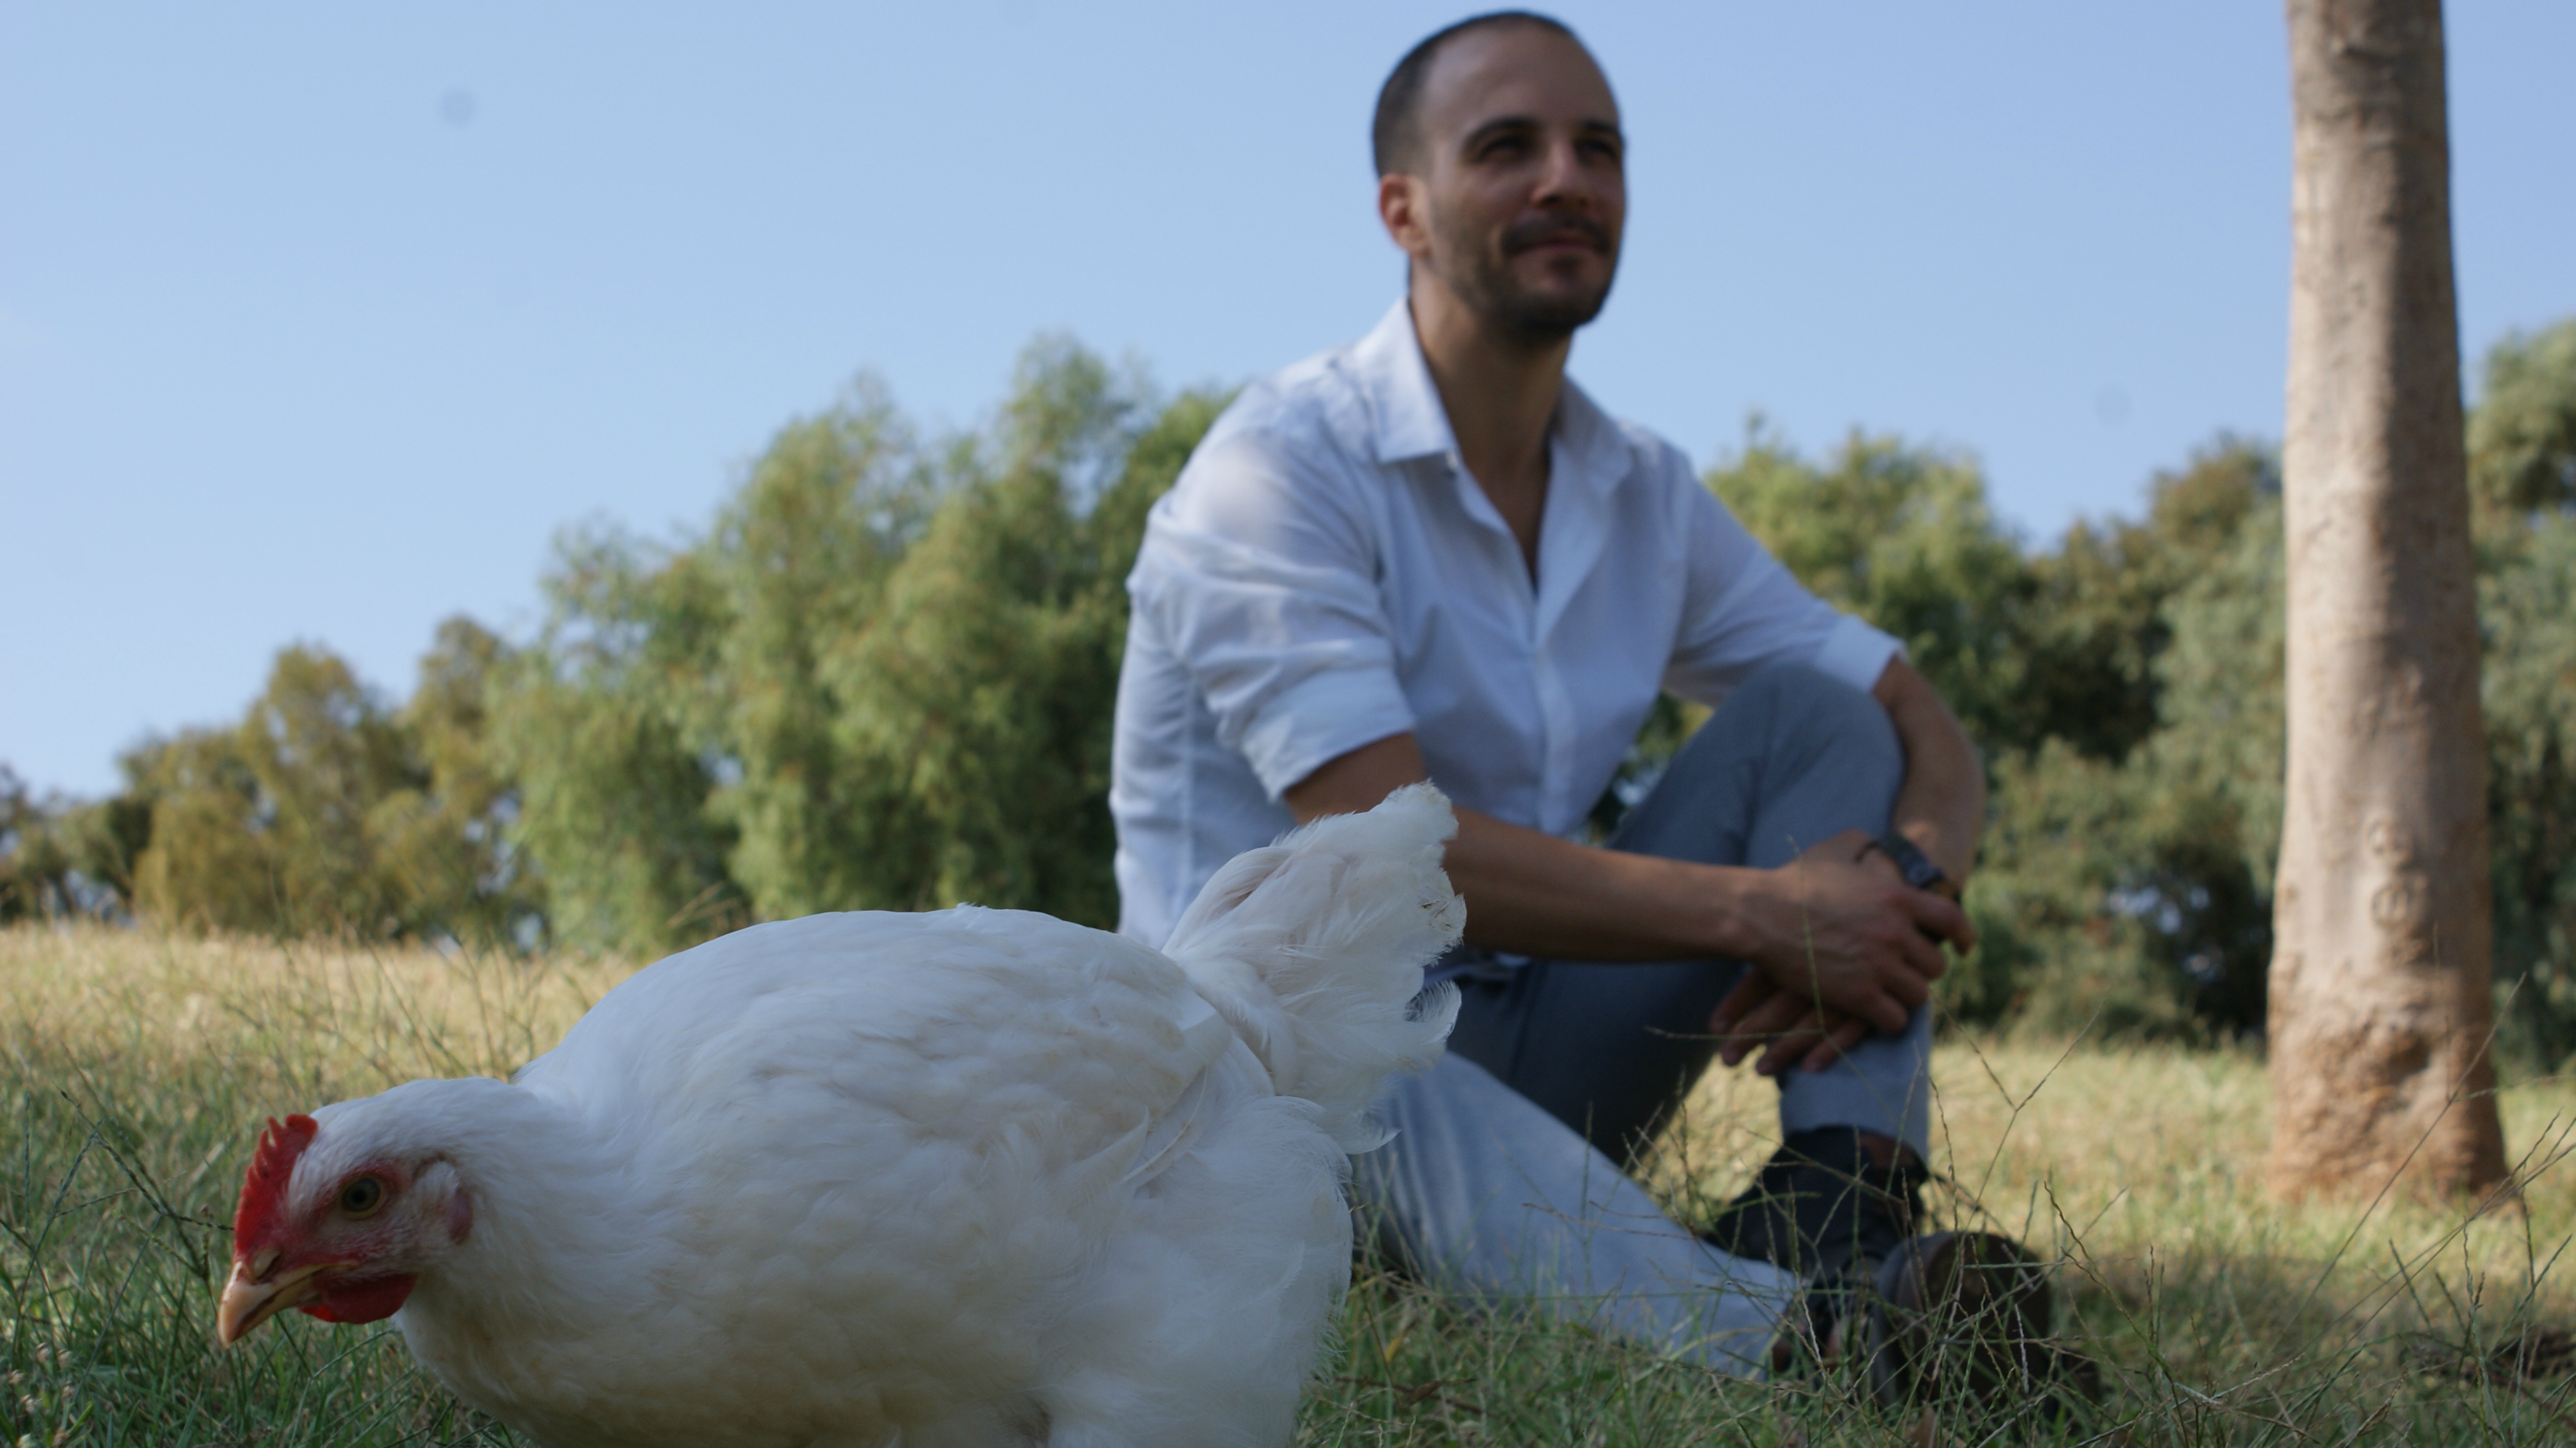 SuperMeat co-founder Ido Savir says creating meat without slaughtering animals is the future of food.